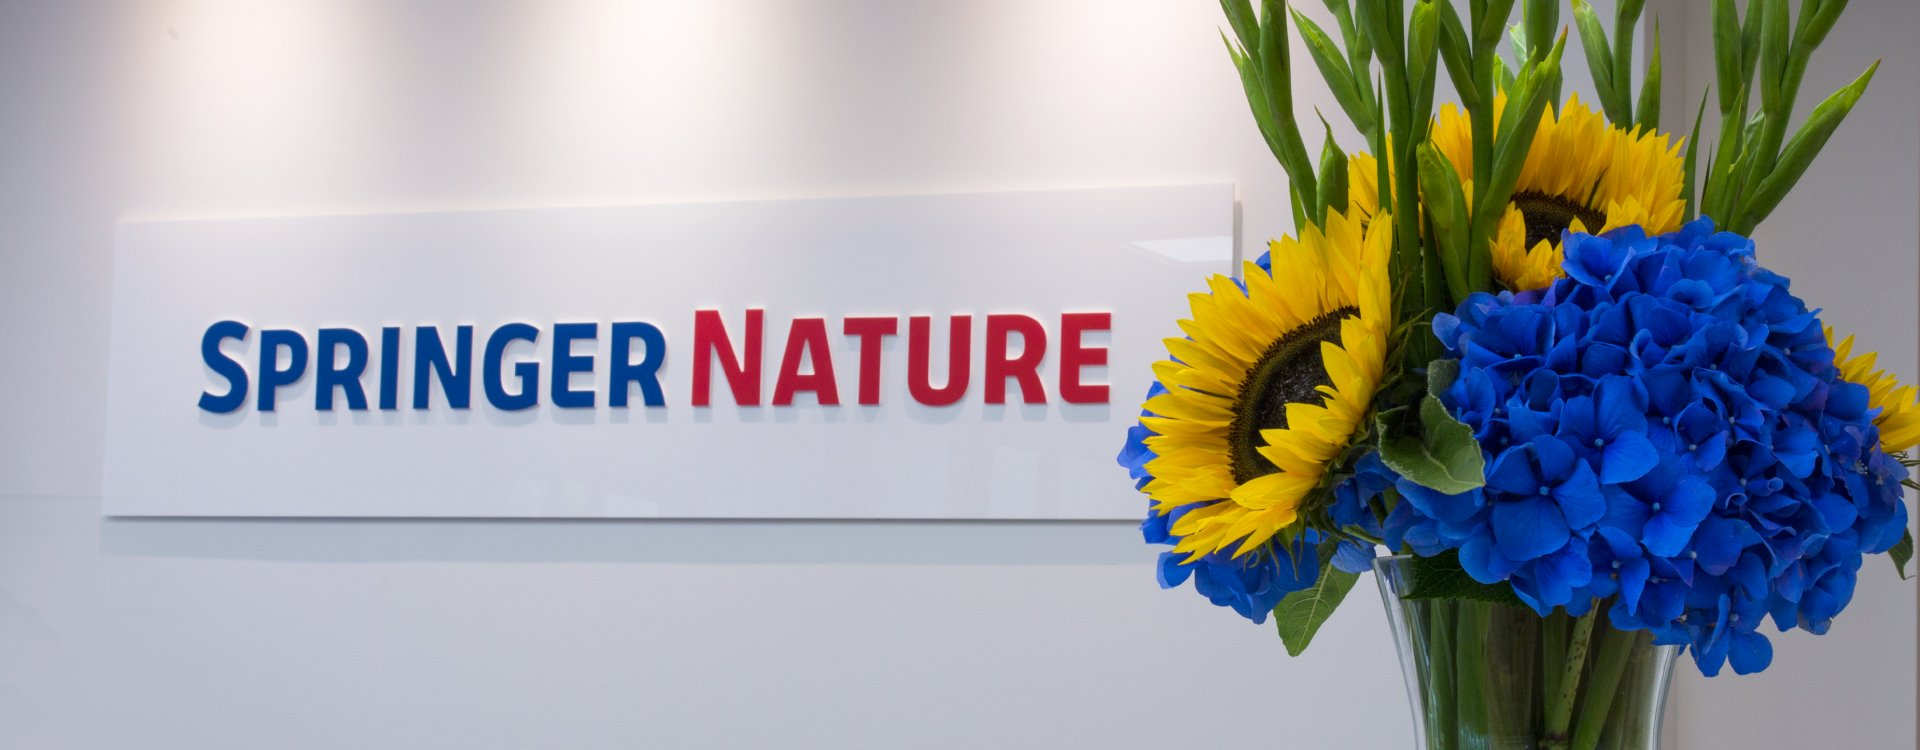 News ipo springer nature